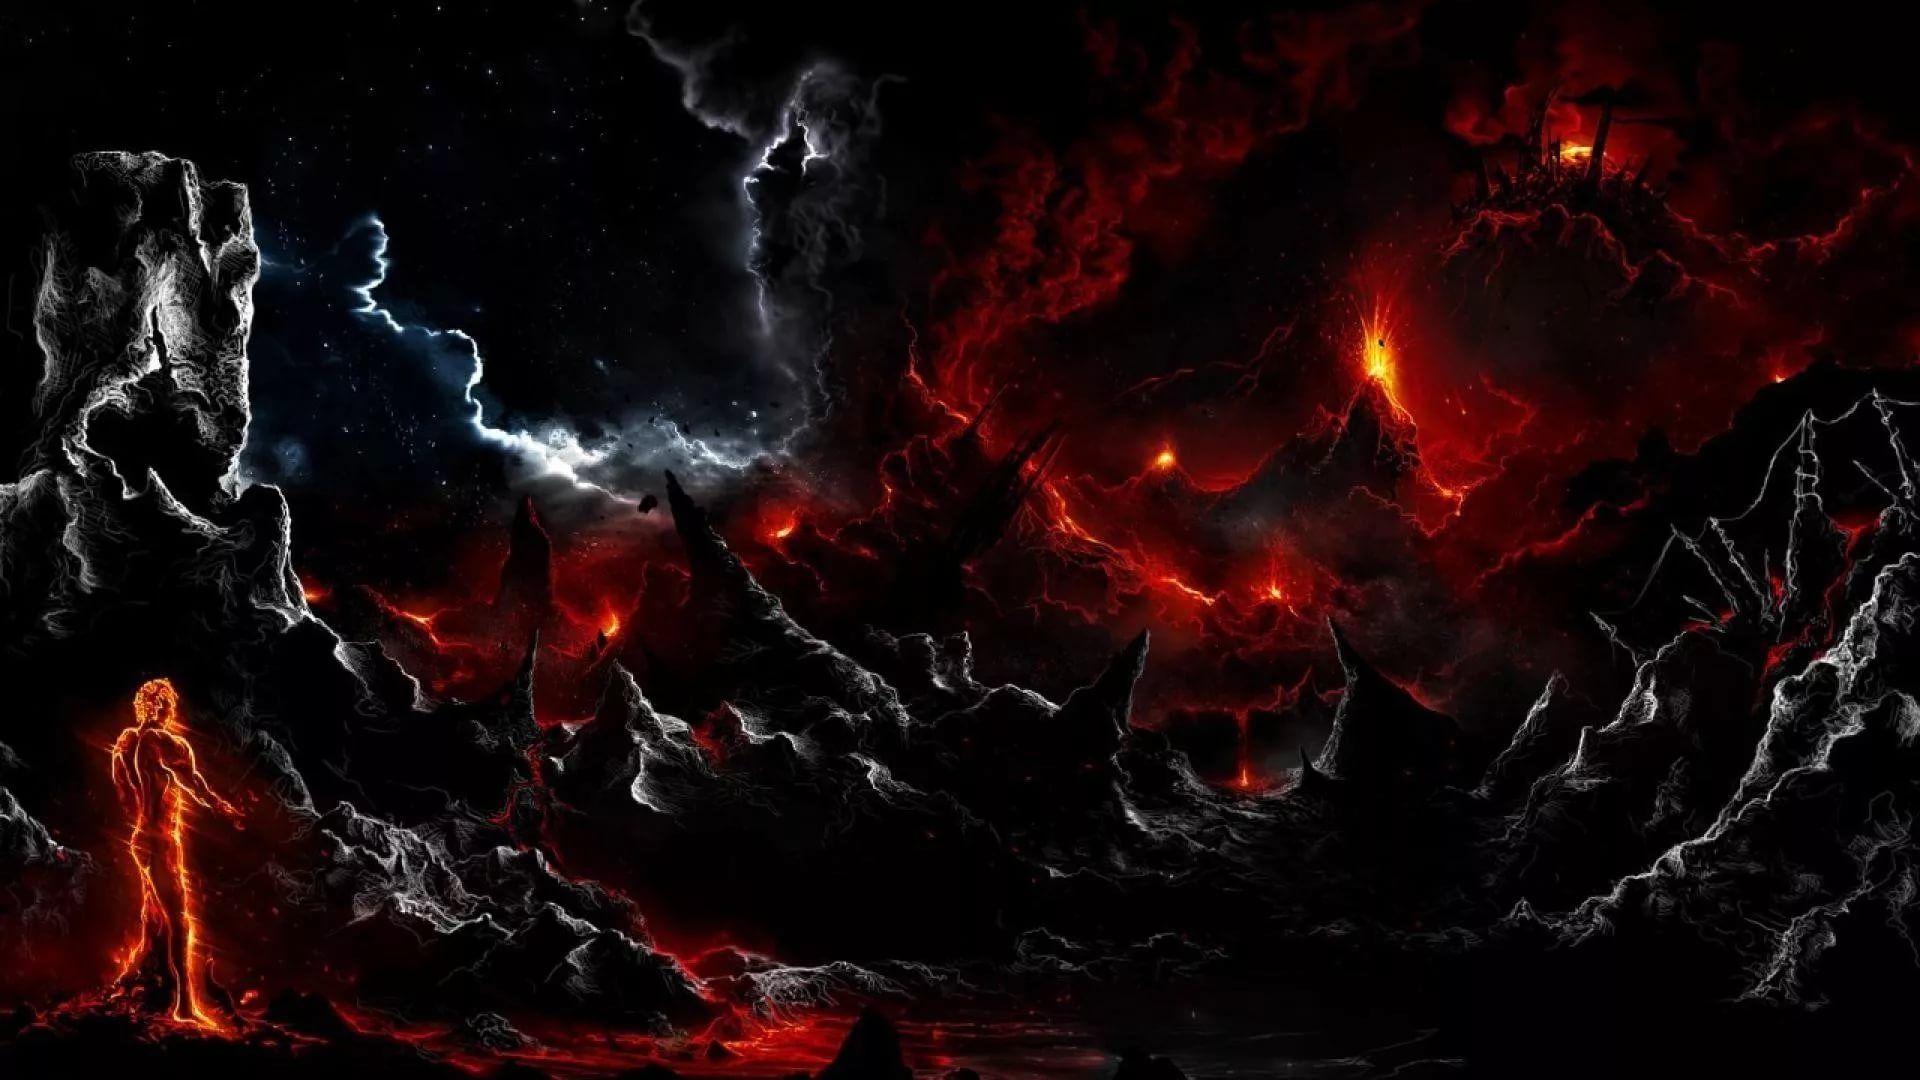 Hell Wallpaper and Background